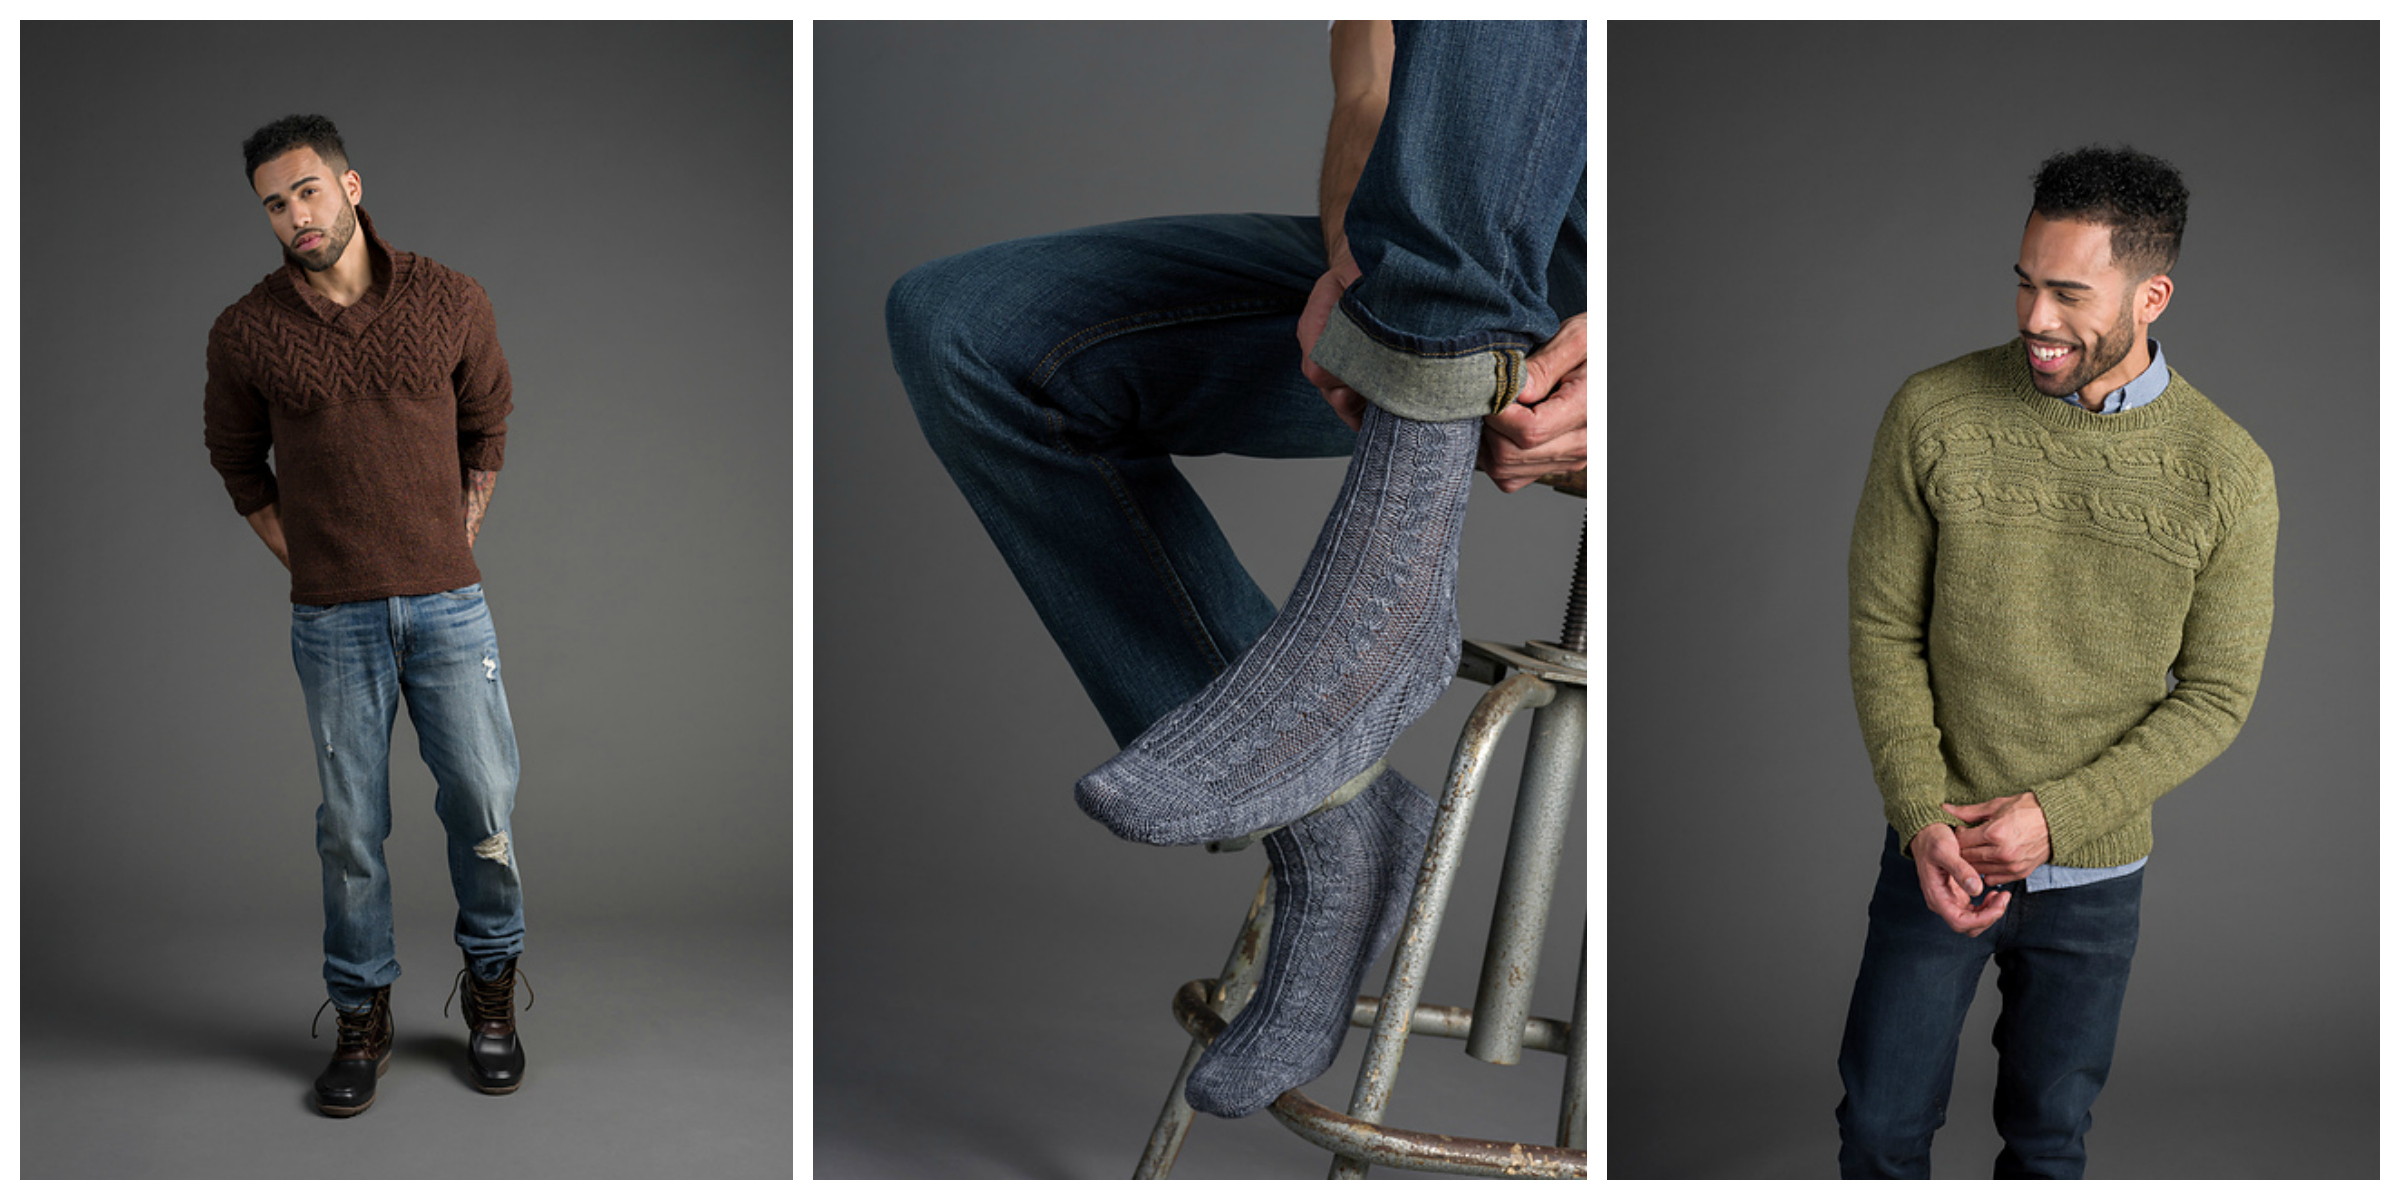 A few of our faves from the upcoming issue 2 of RIB magazine (L-R): Rigging Pullover by Fiona Ellis, Fickle Steps Socks by Louise Tilbrook, and Cayley Pullover by Irina Anikeeva.